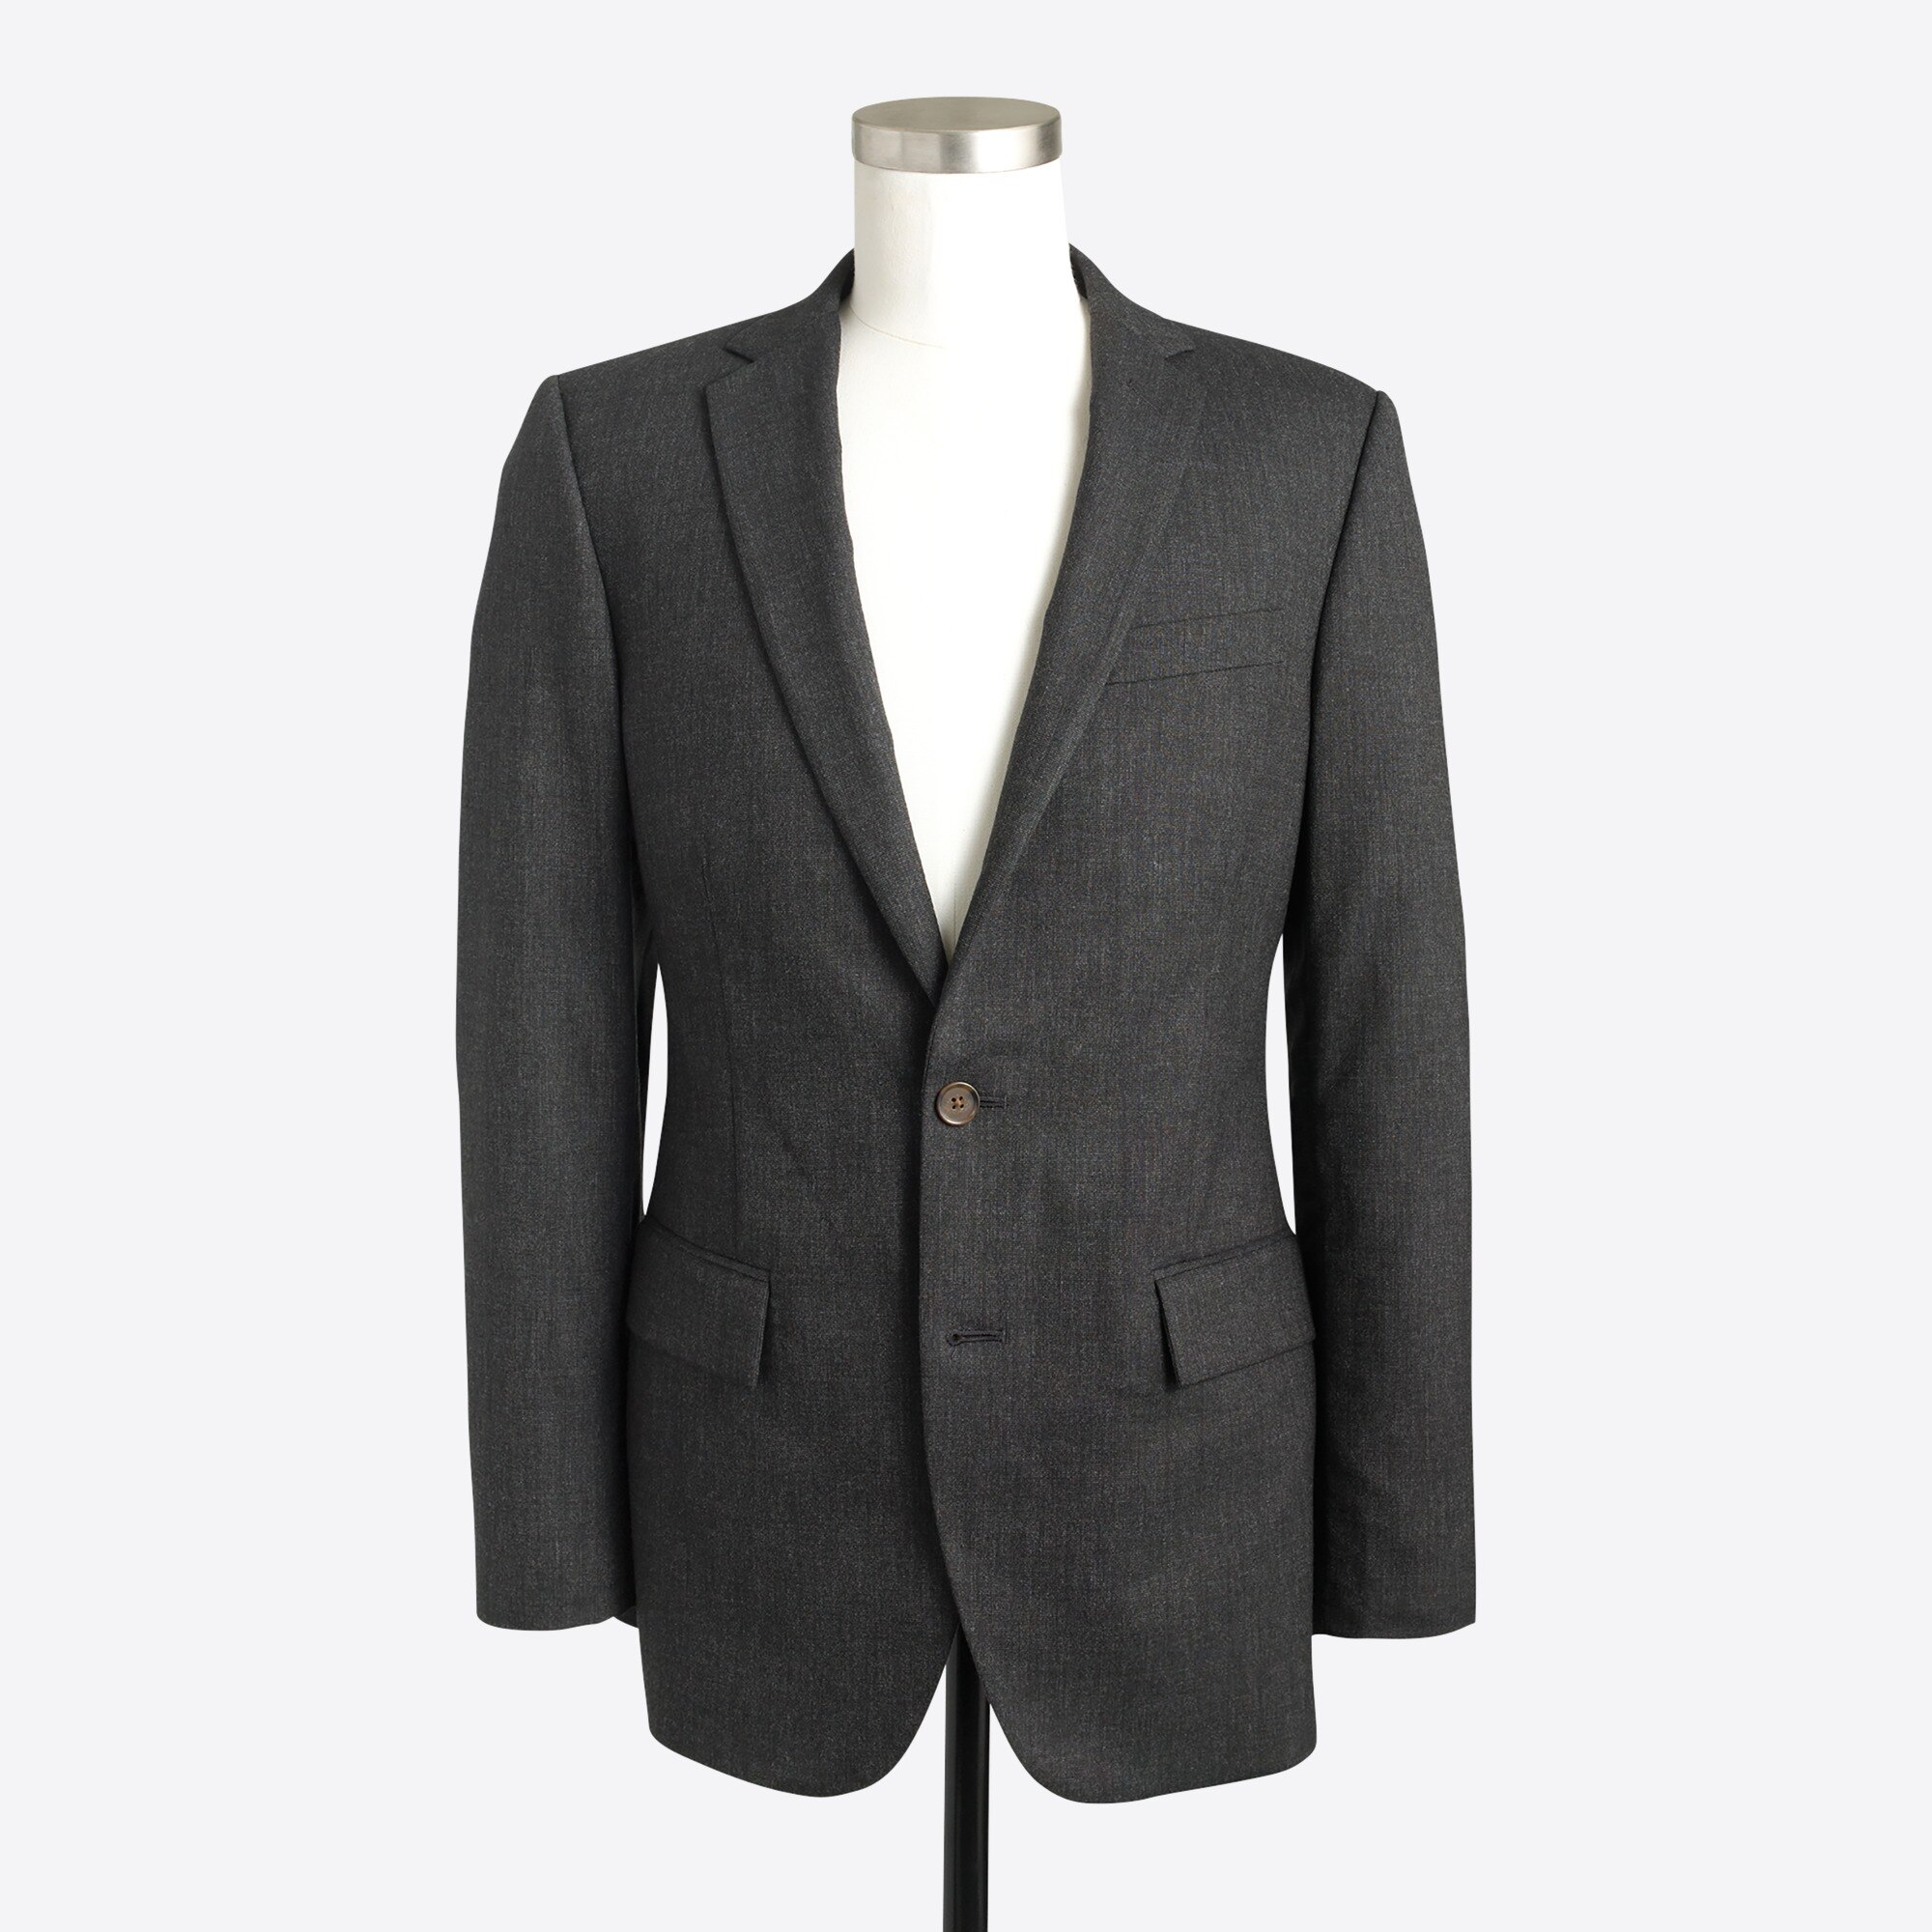 Image 2 for Thompson suit jacket in flex wool